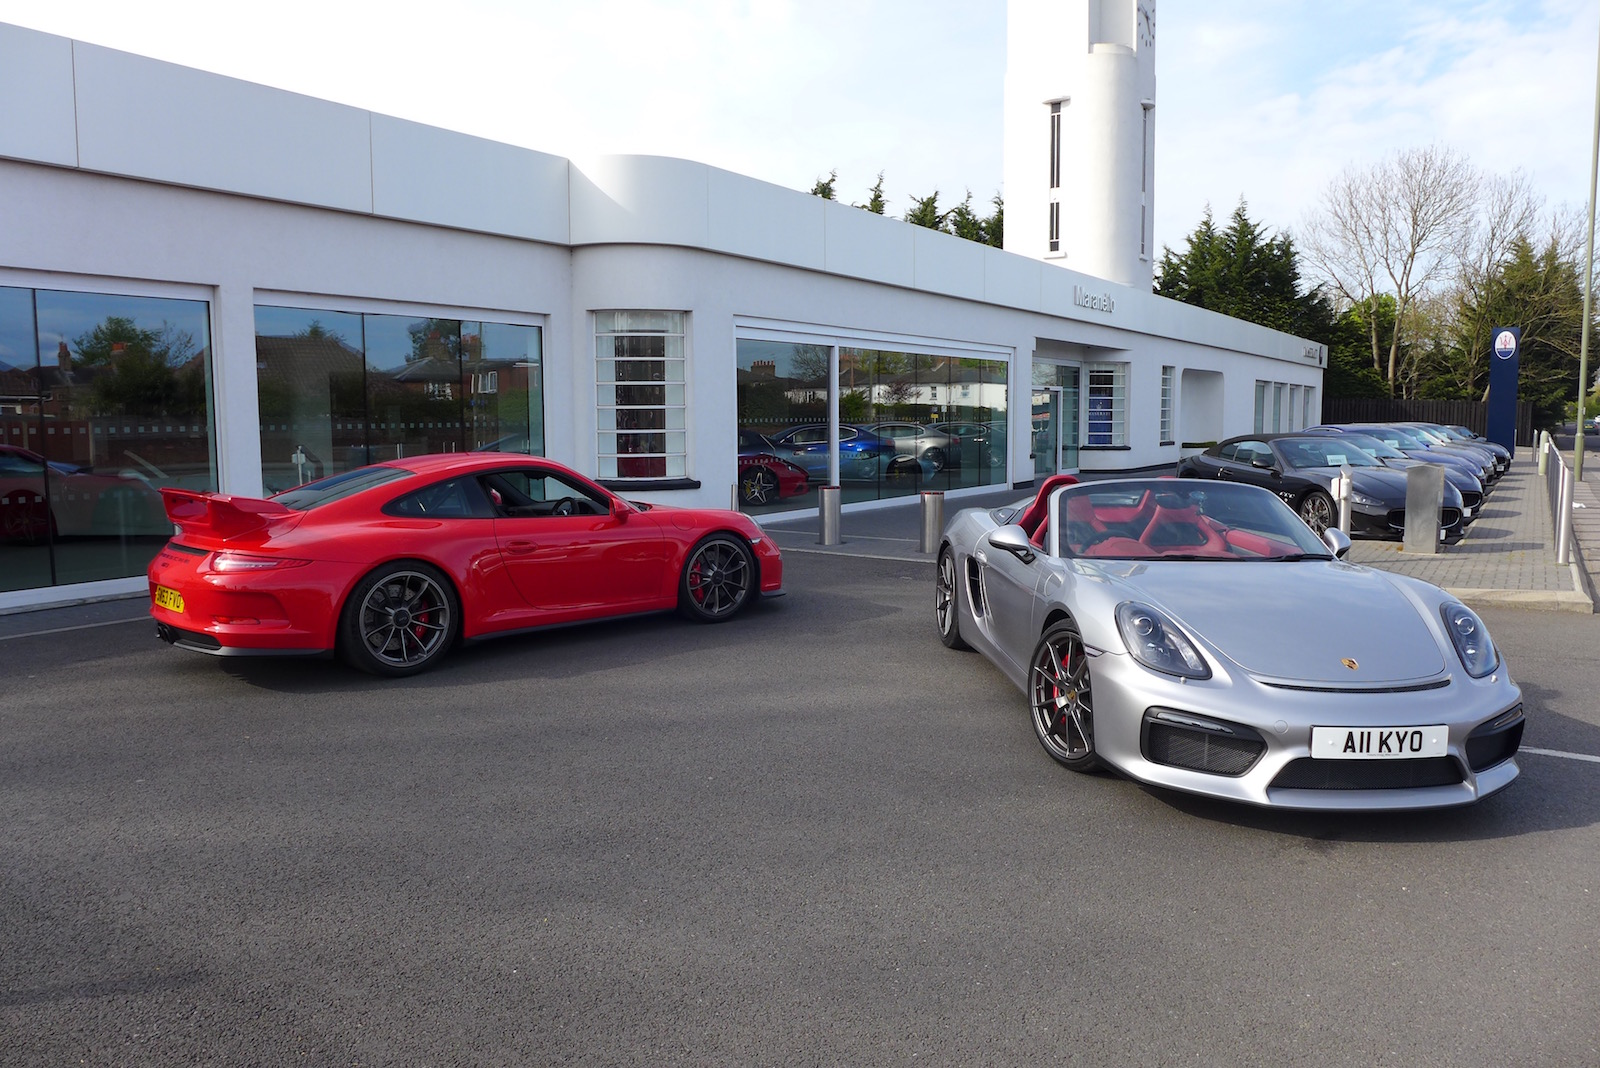 Meet up with a Porsche Boxster Spyder